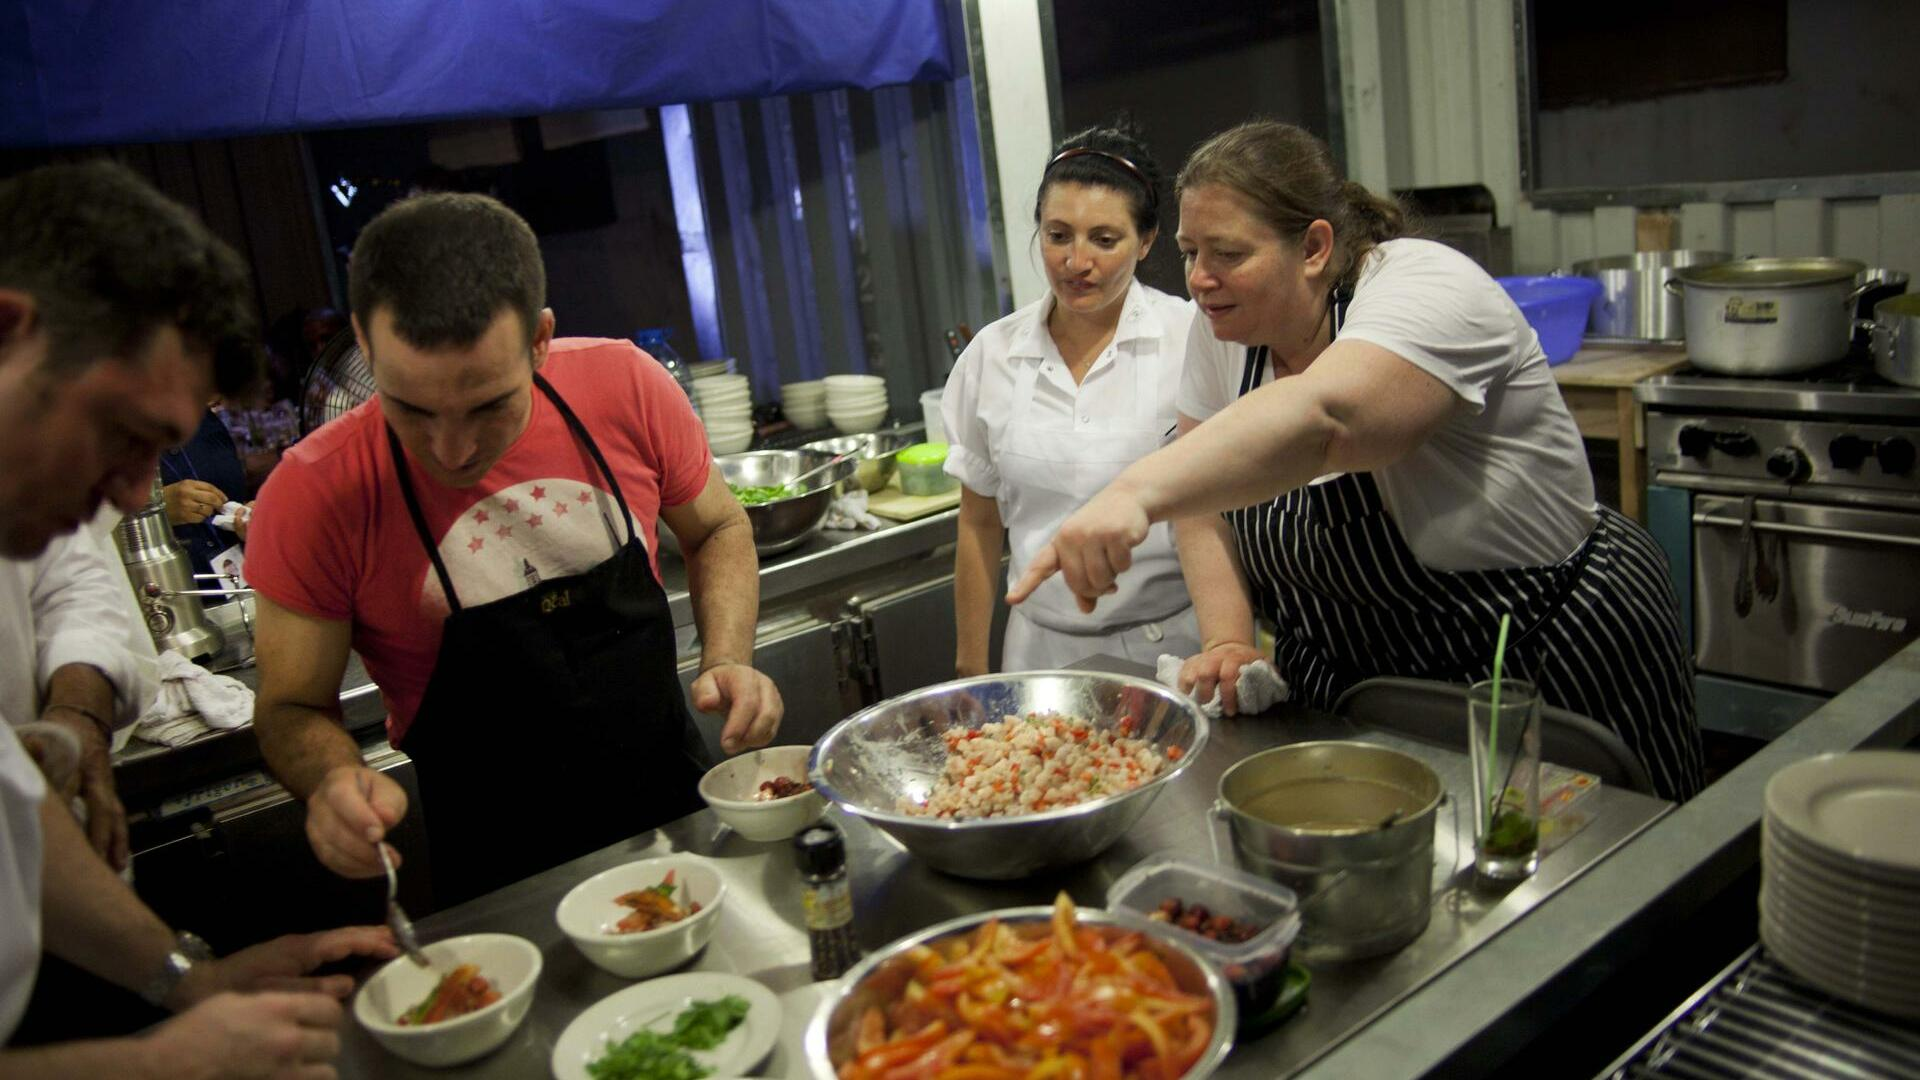 Cuban chef Hector Higuera, second left, and U.S, chef Sara Jenkins, right, pointing, team up, in Havana, Cuba, Quelle: dapd